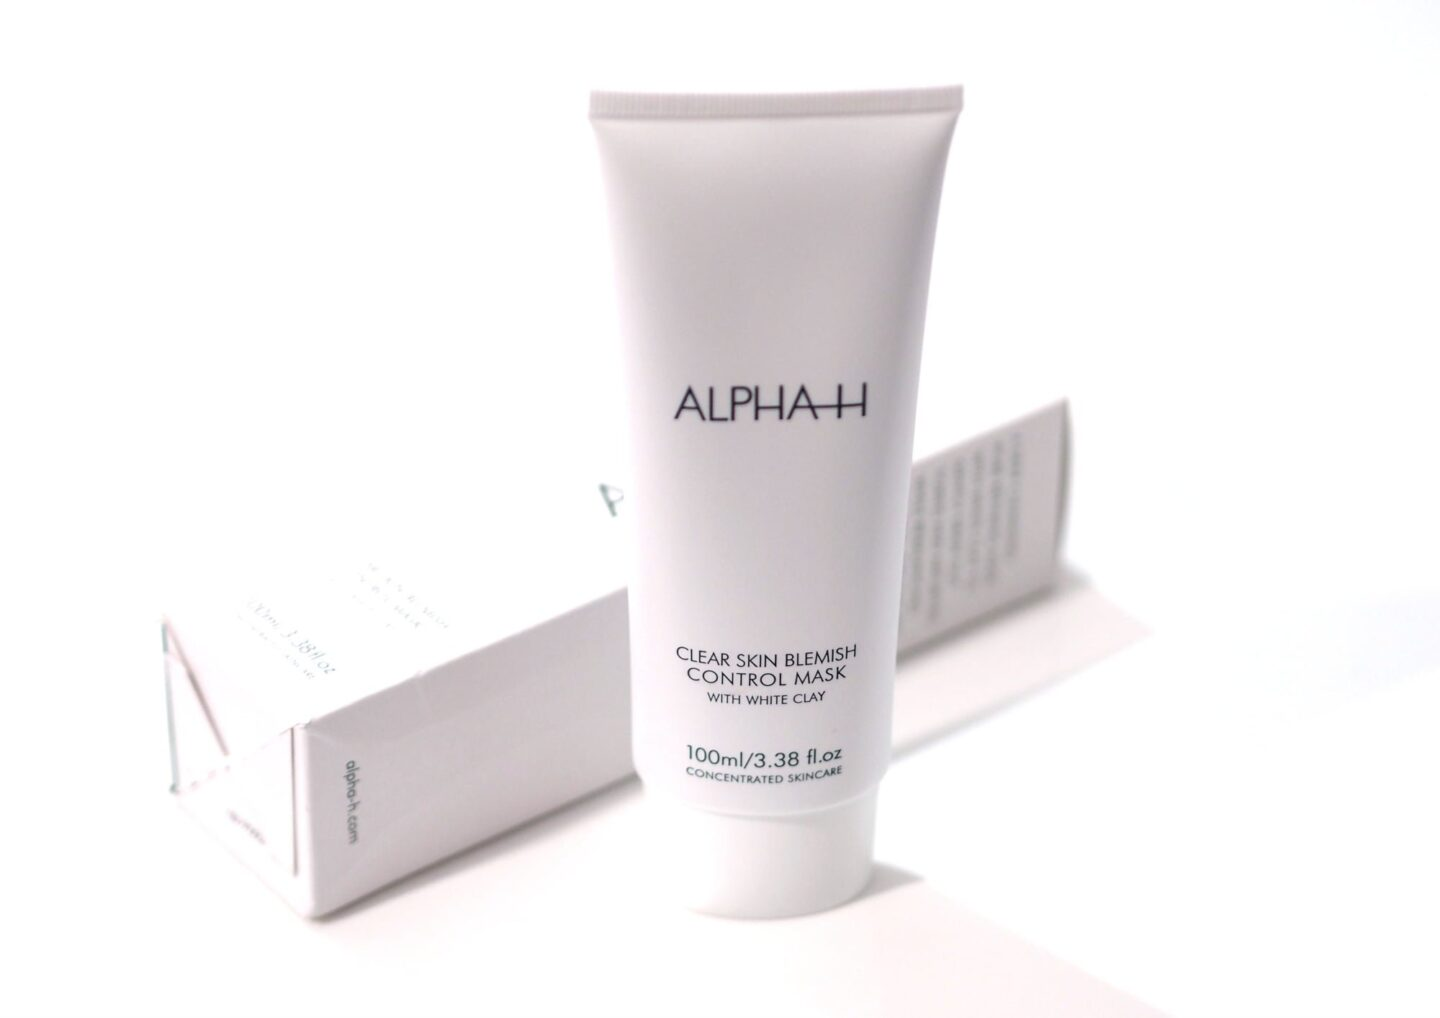 Alpha-H Clear Skin Blemish Control Mask Review